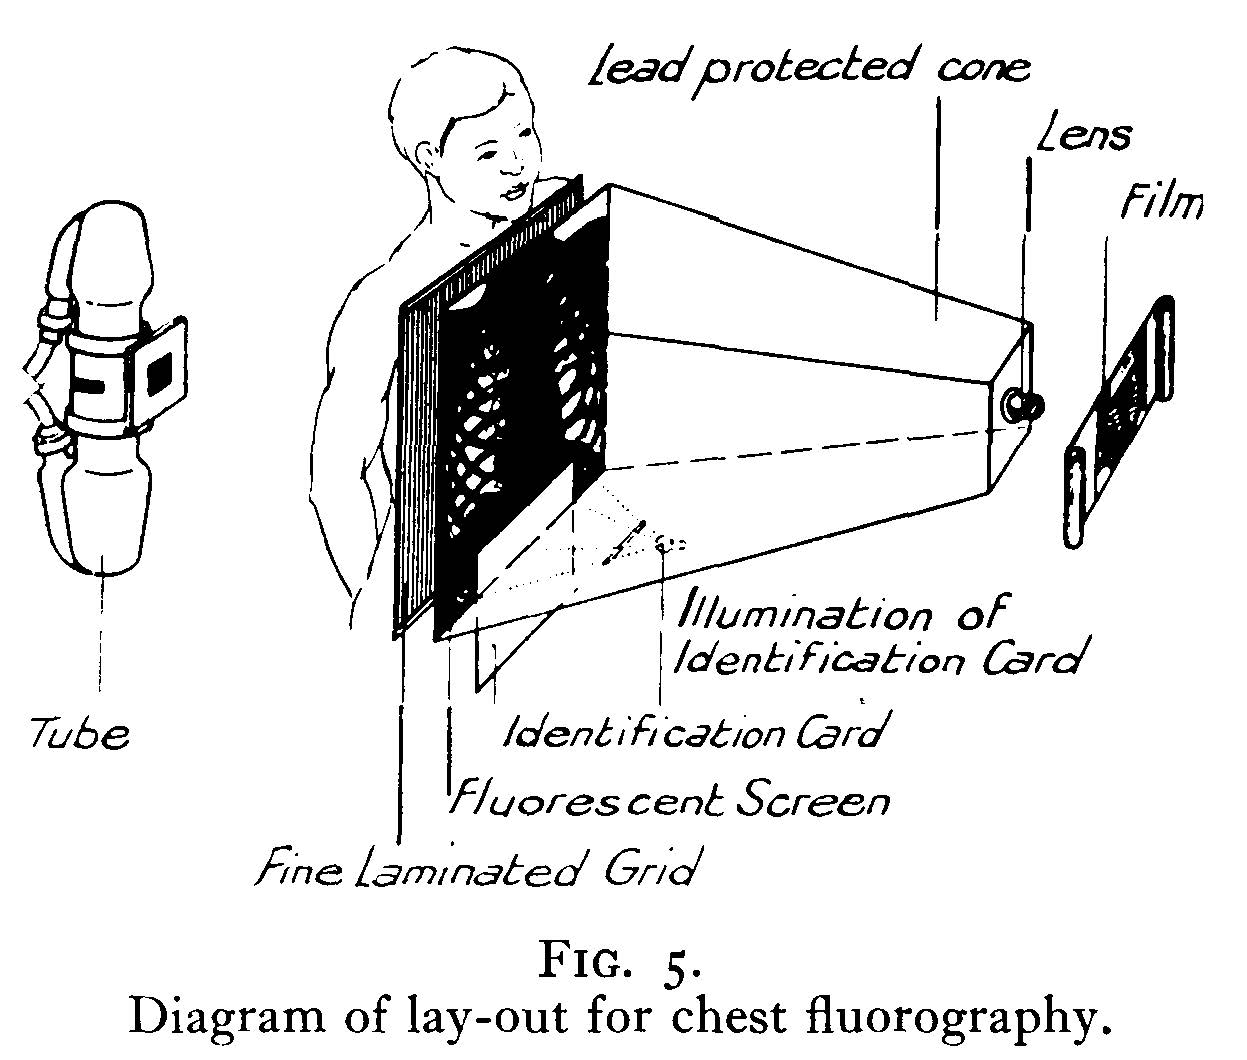 Diagram of lay out for chest fluorography